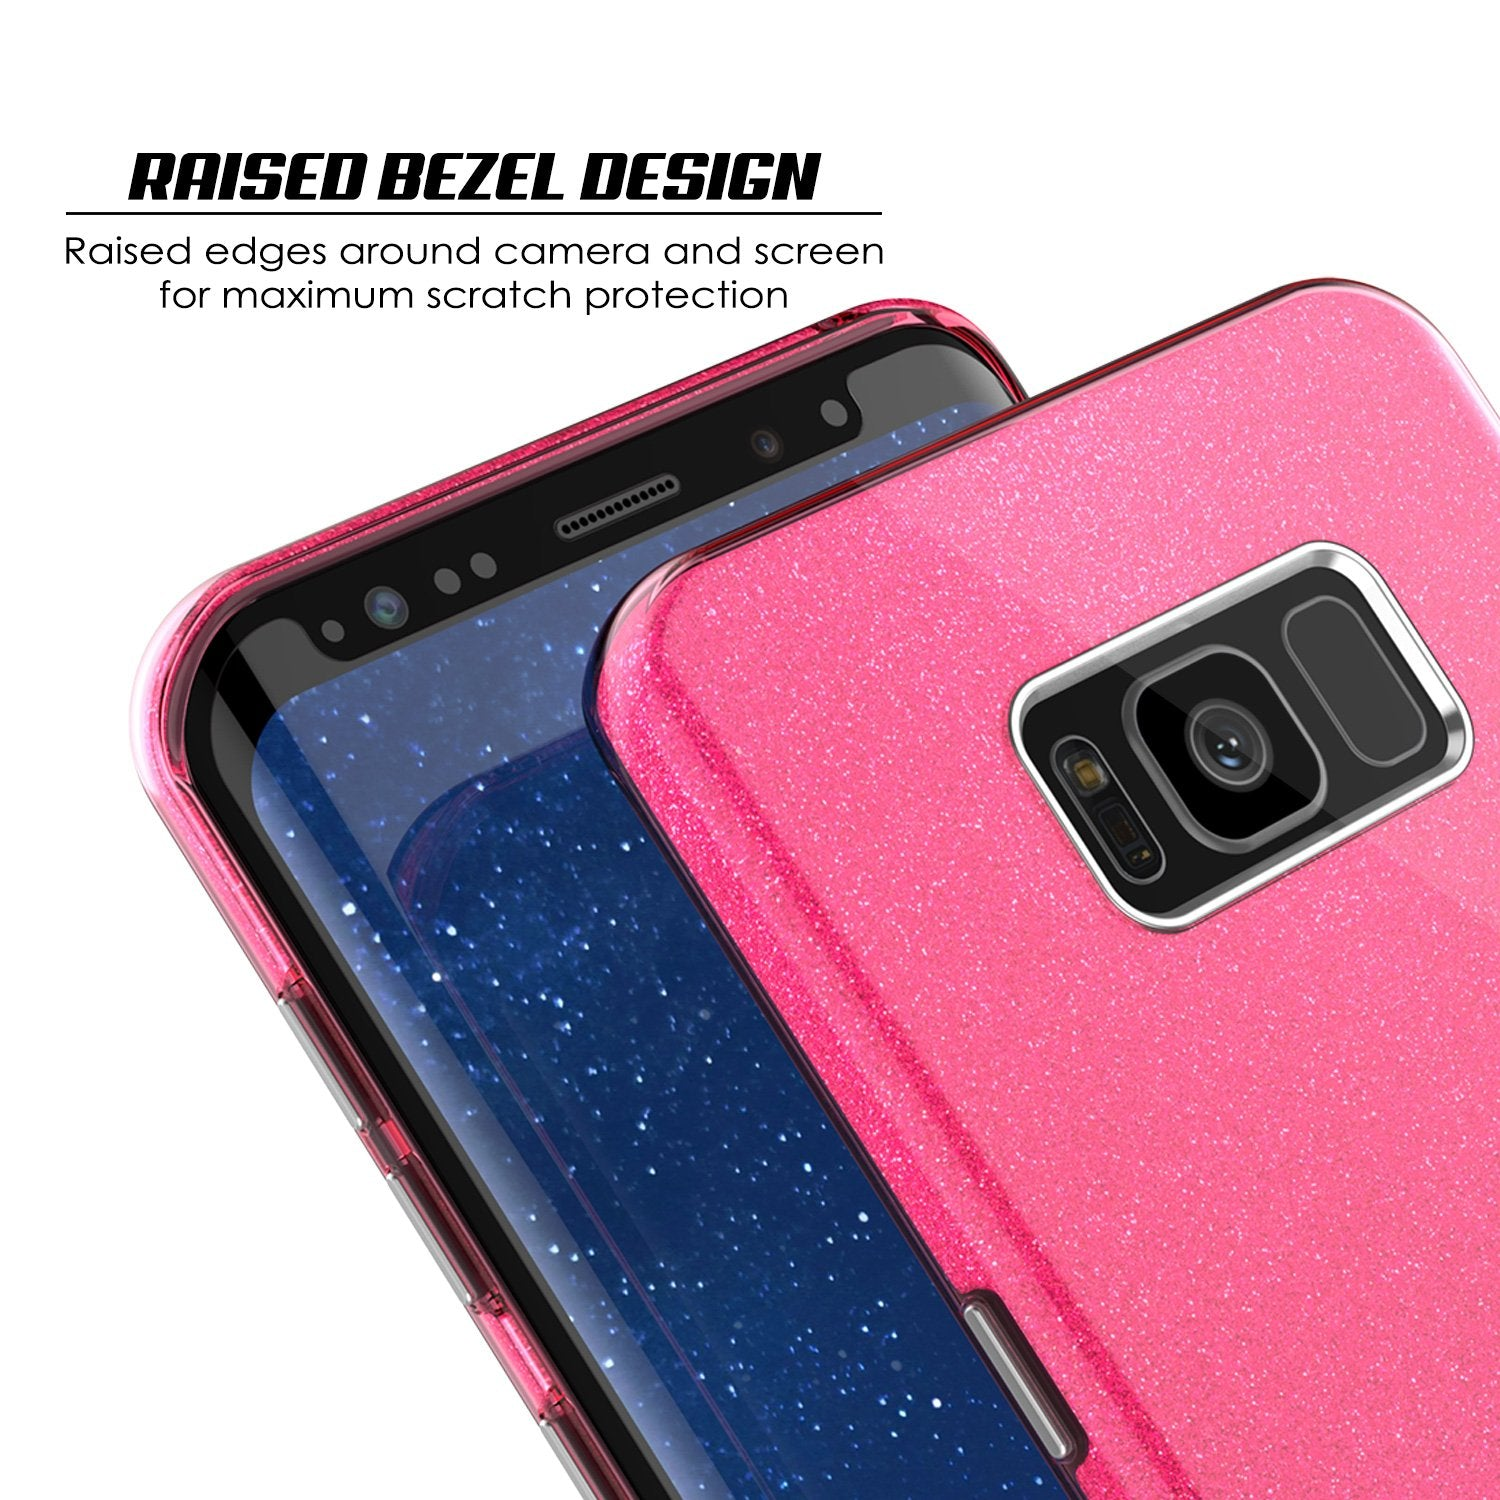 Galaxy S8 Case, Punkcase Galactic 2.0 Series Ultra Slim Protective Armor TPU Cover w/ PunkShield Screen Protector [Pink]